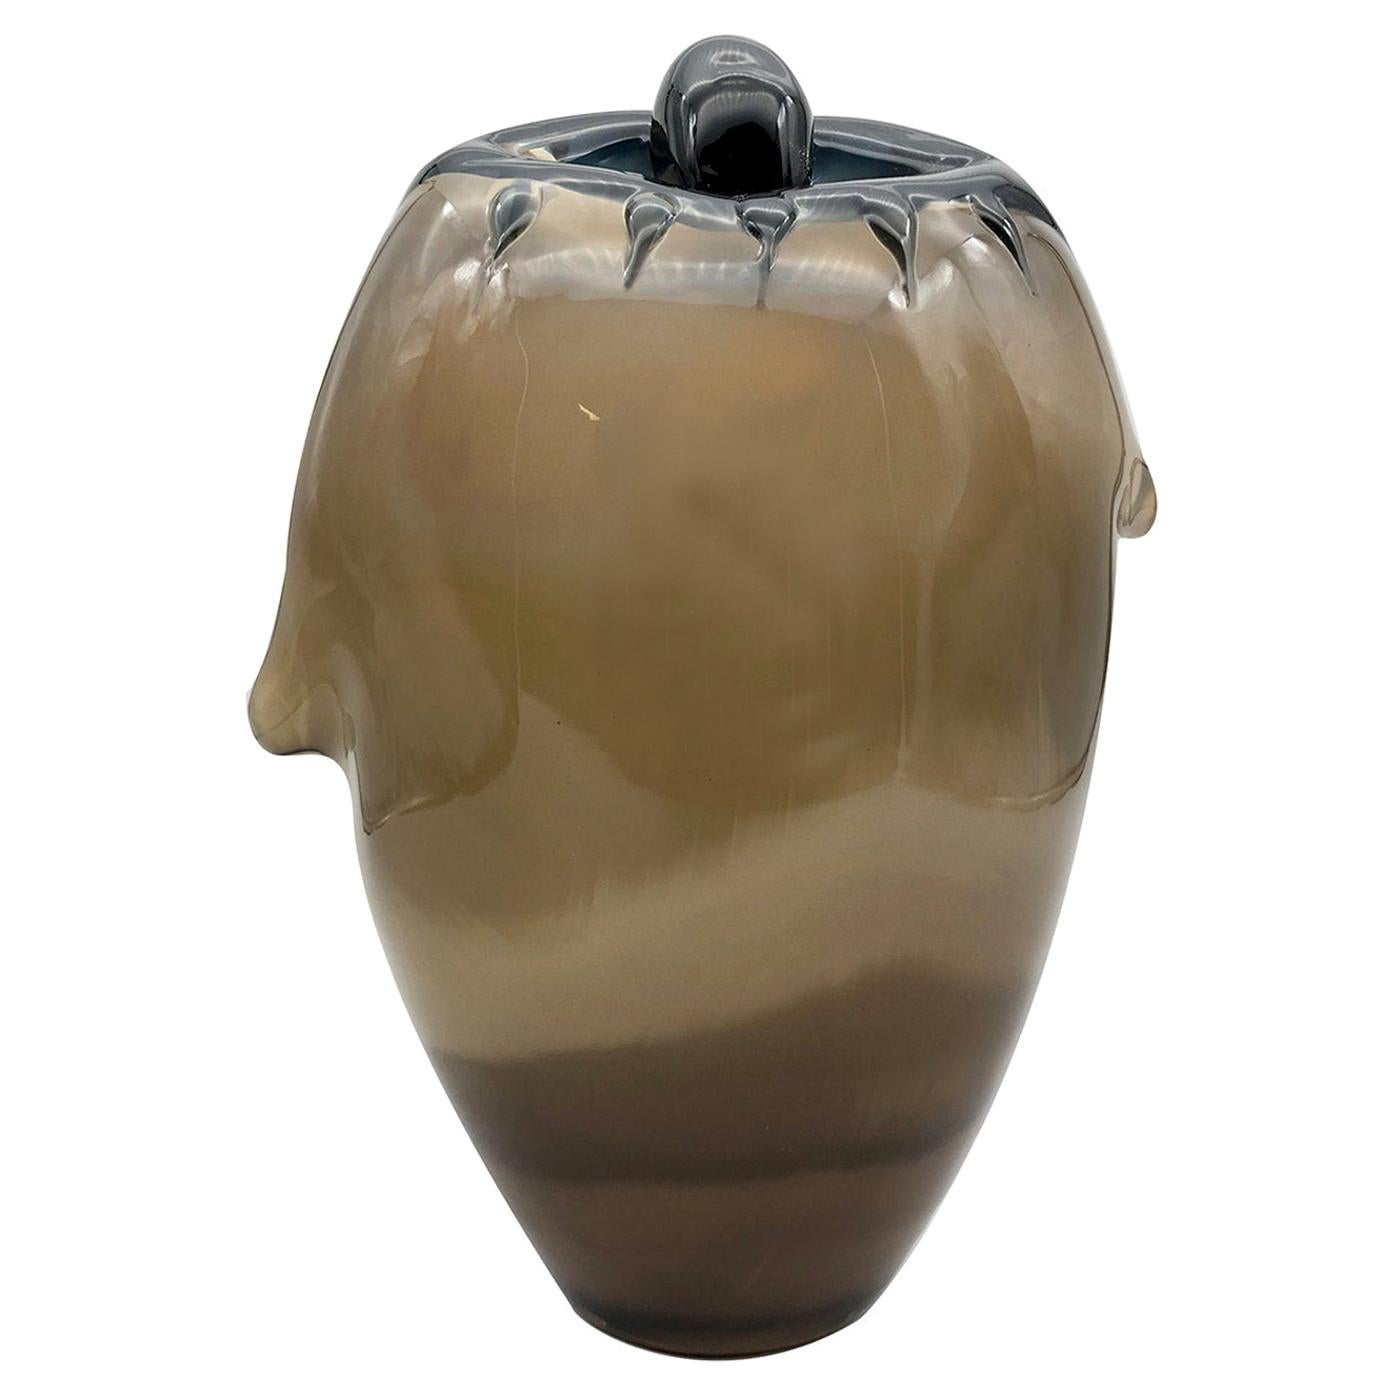 The Eye Dark Amber Vase by Toso Cristiano